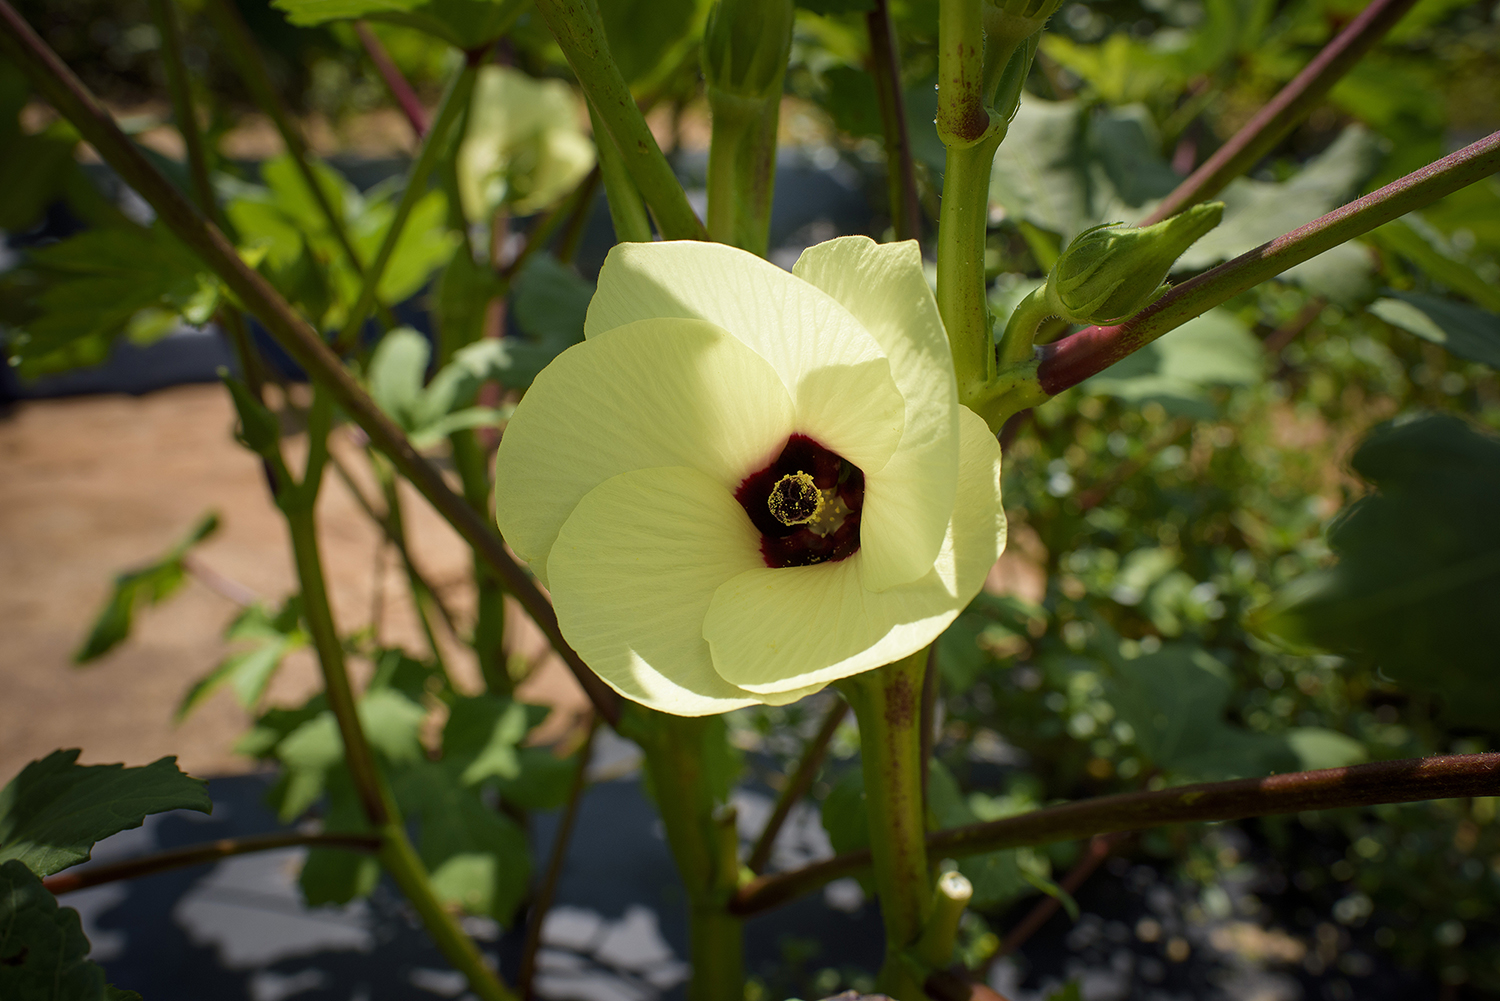 A close up of an okra plant blooming.